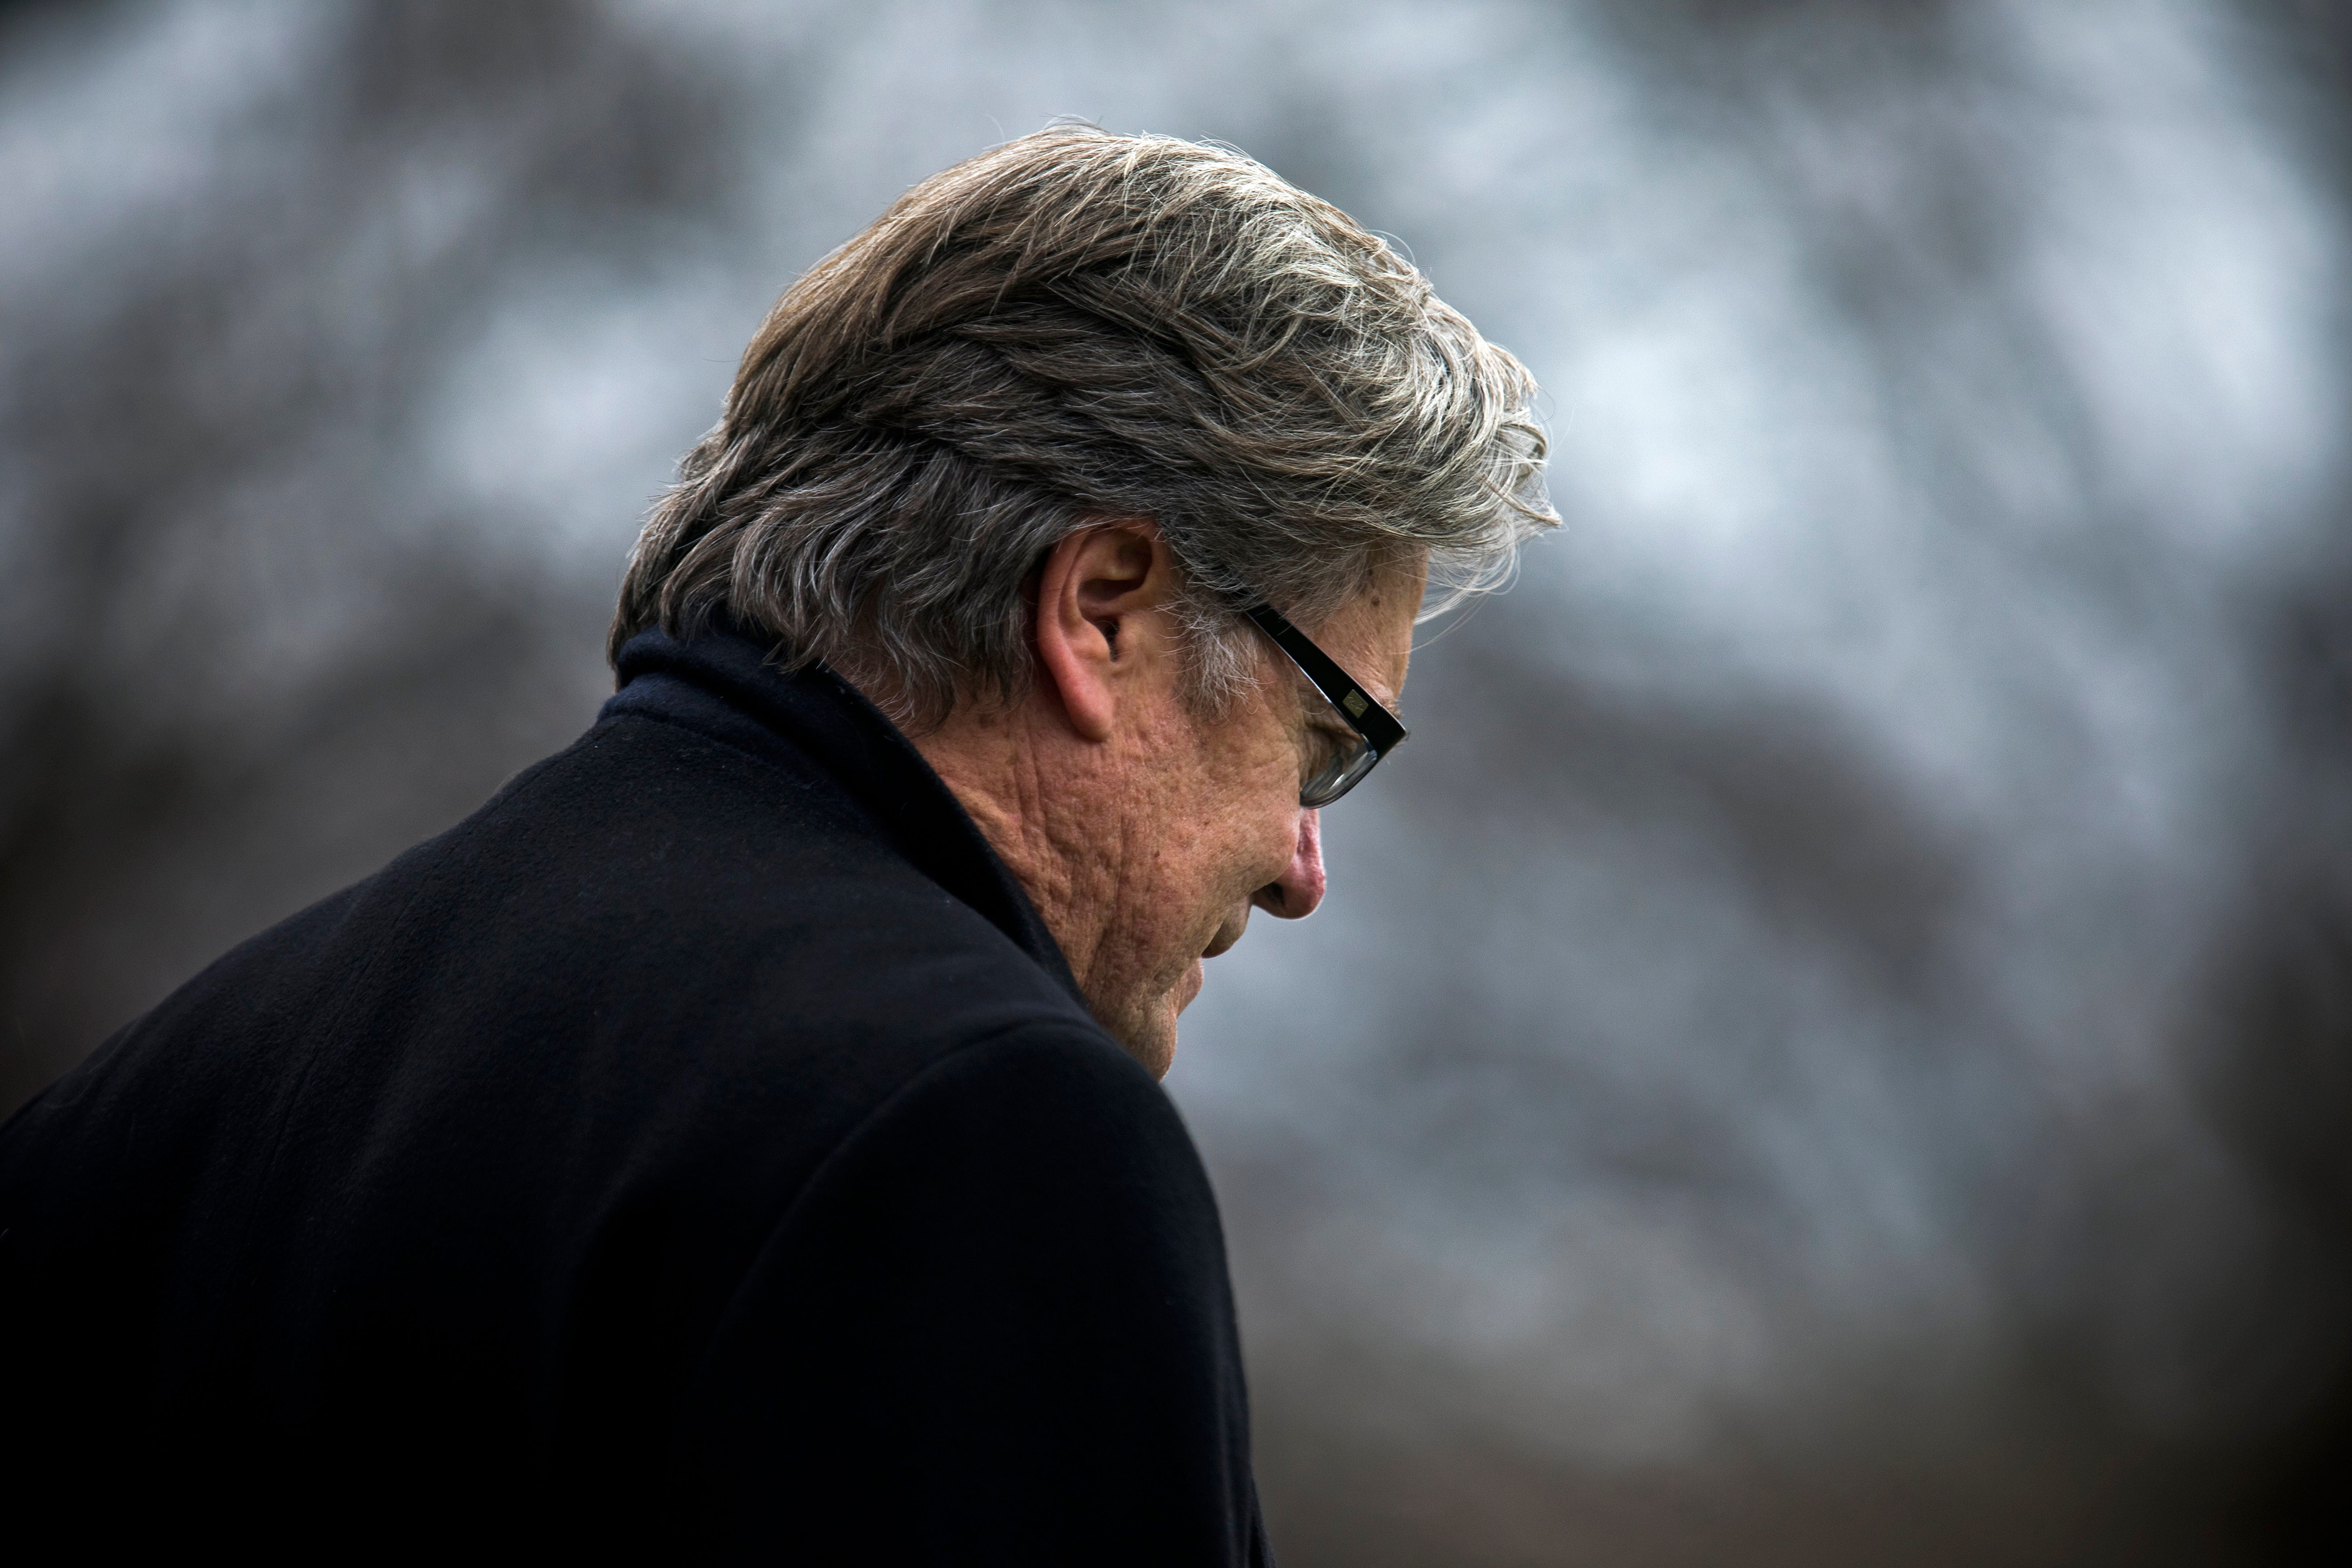 Hollywood bids Steve Bannon a not-so-fond farewell after White House ouster